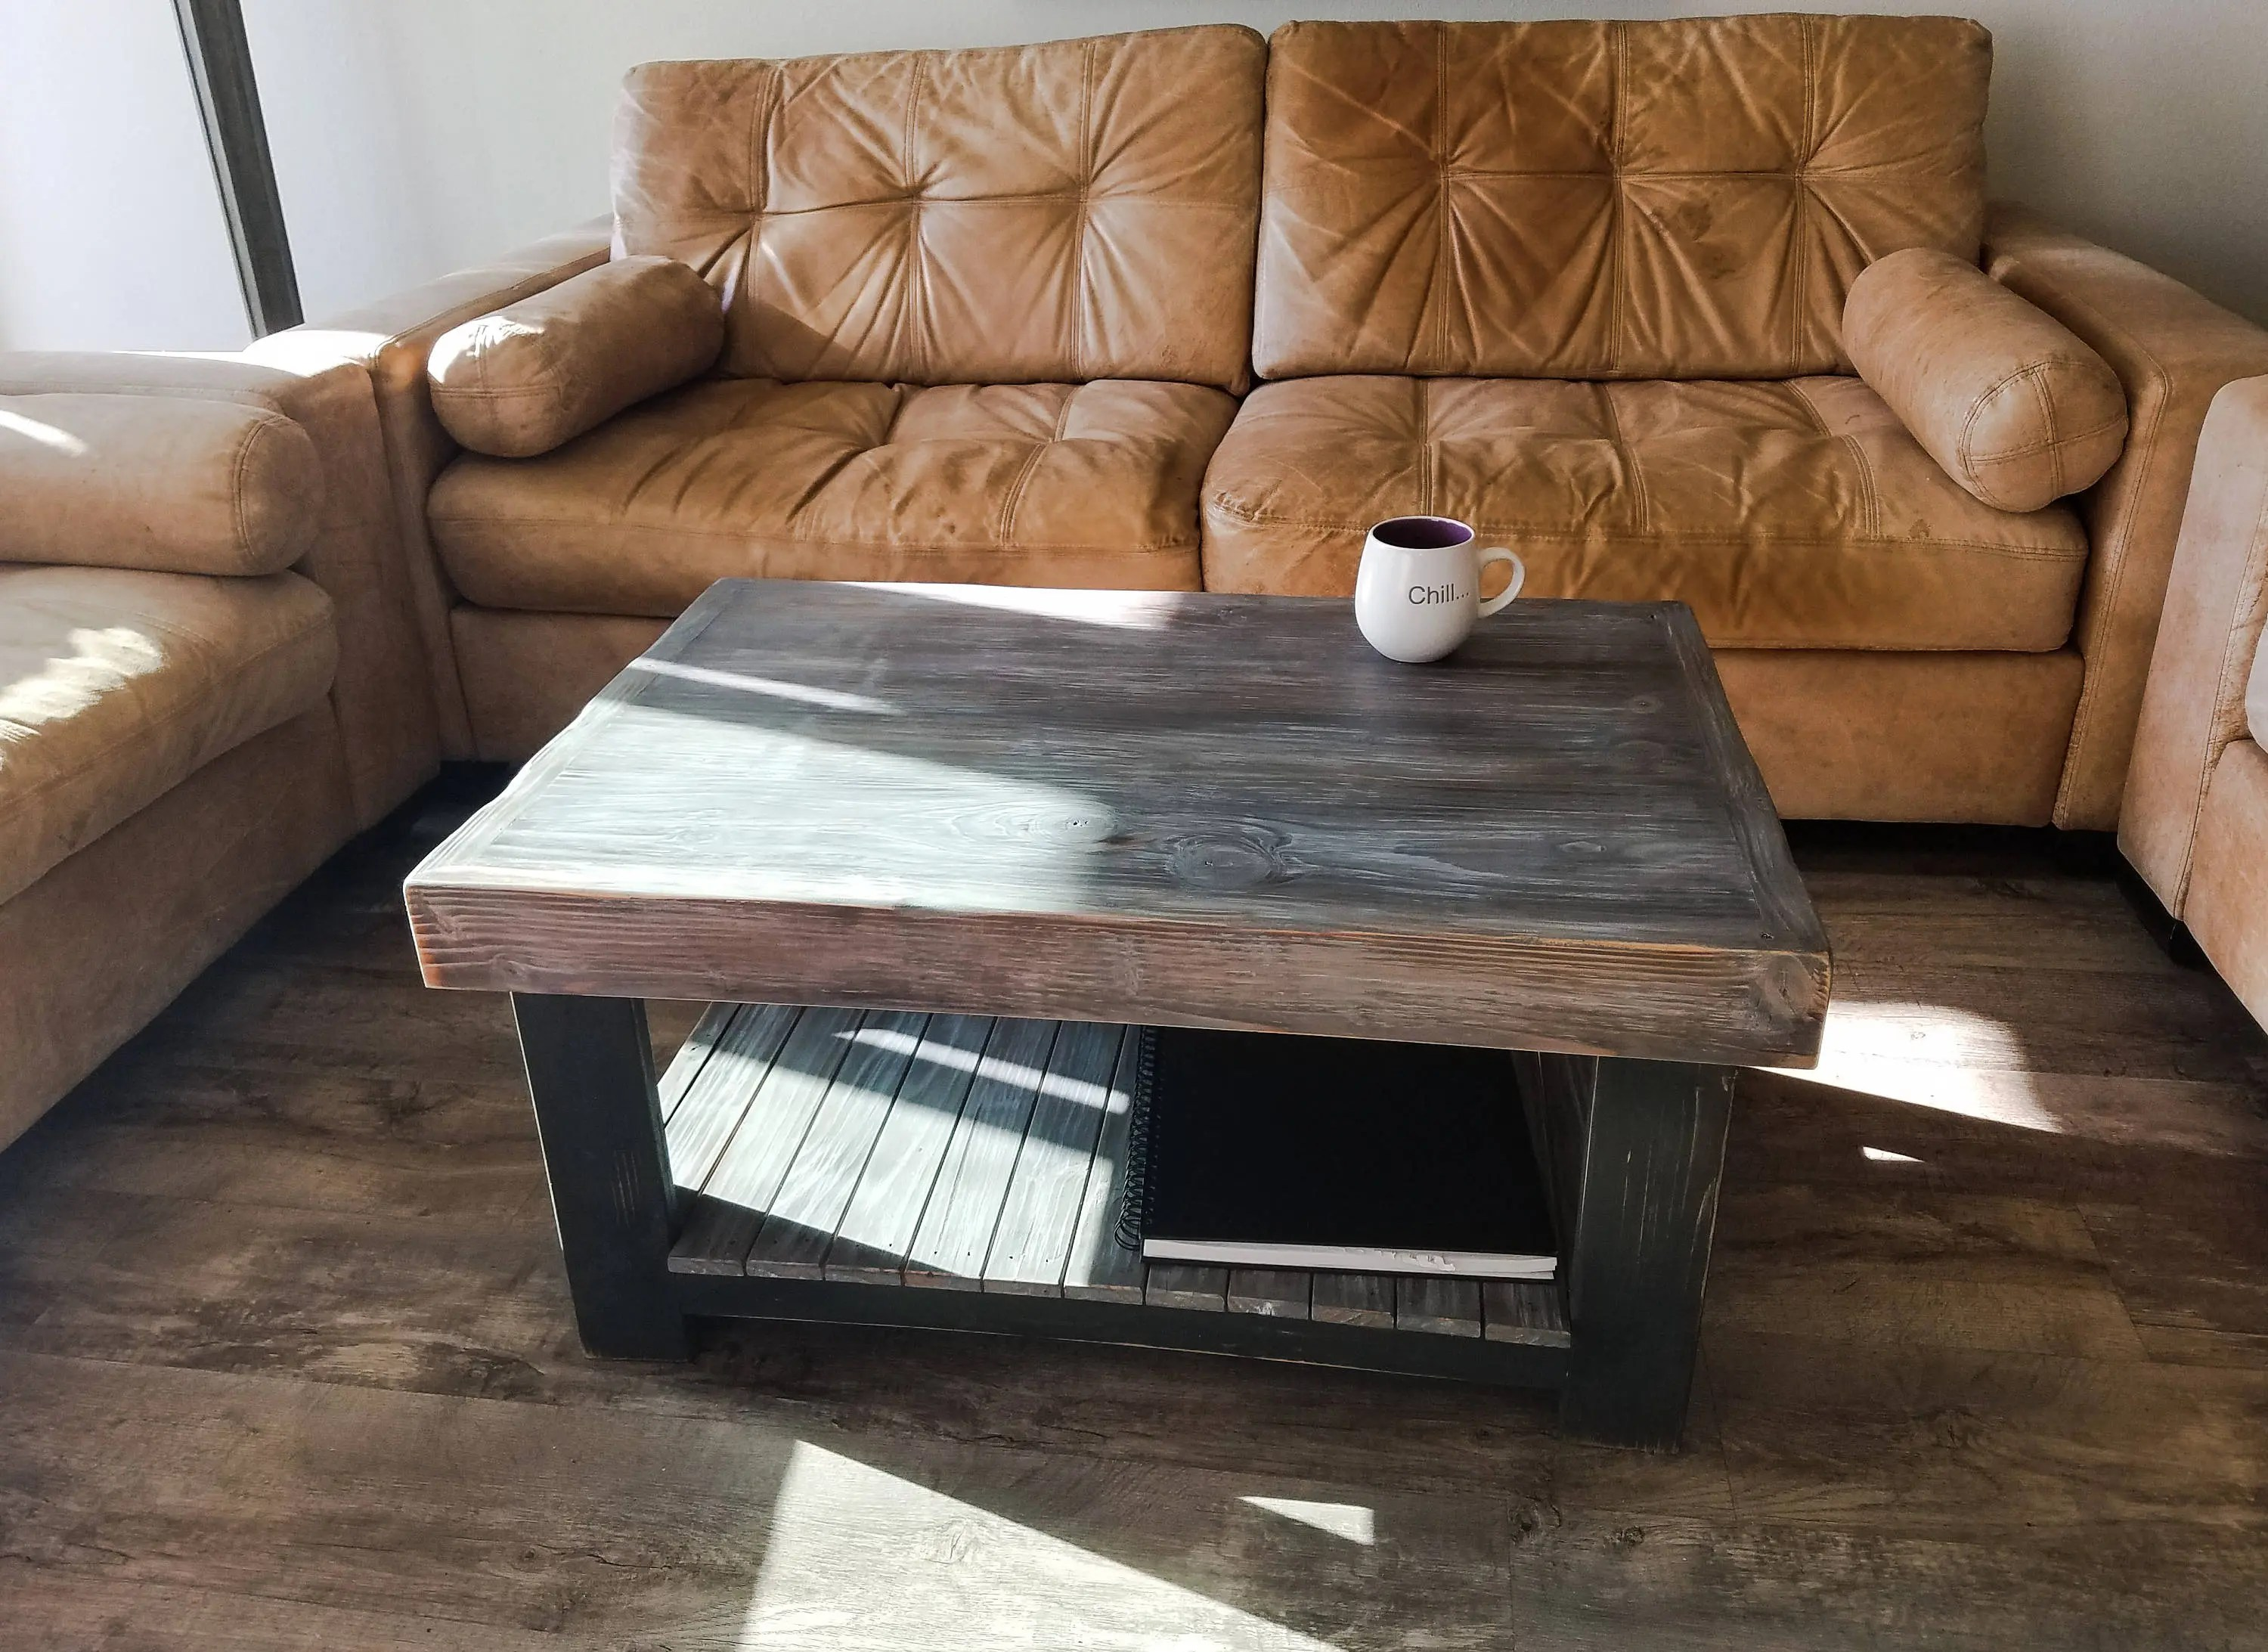 Rustic Beach Coffee Table Gray Wood Coffee Table Rustic Table Beach Table Weathered